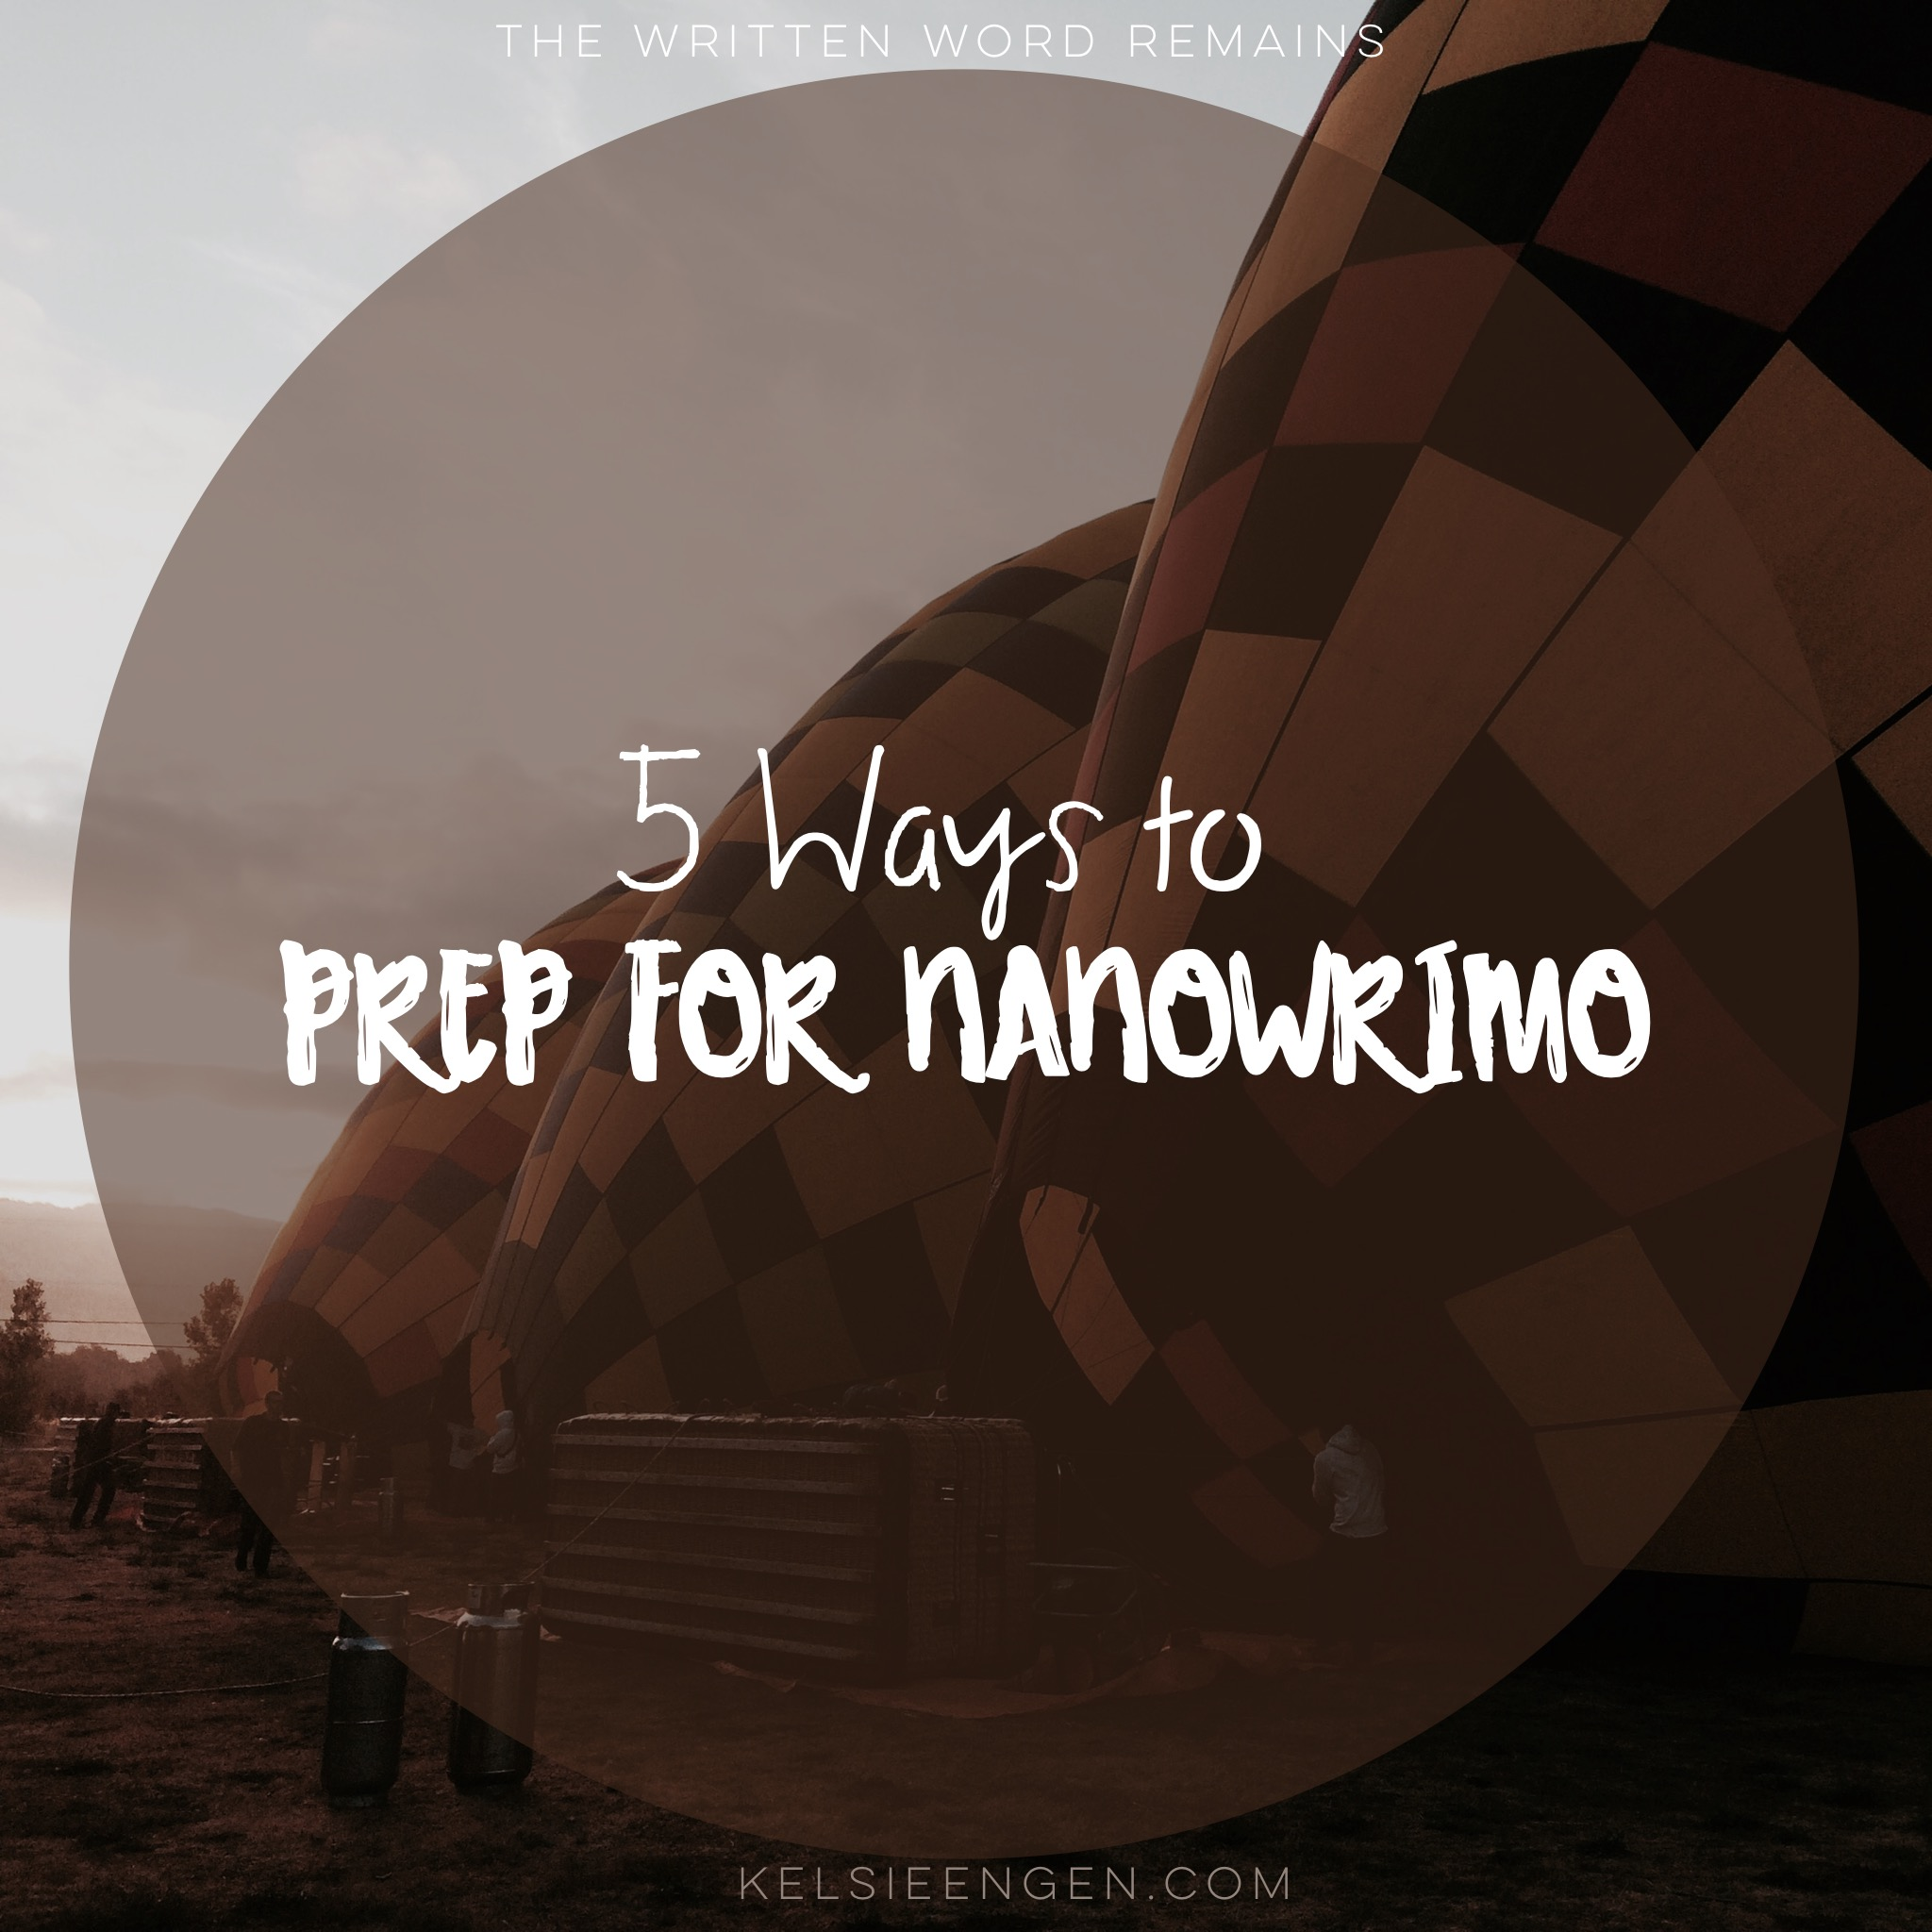 5 Ways to Prep for NaNoWriMo